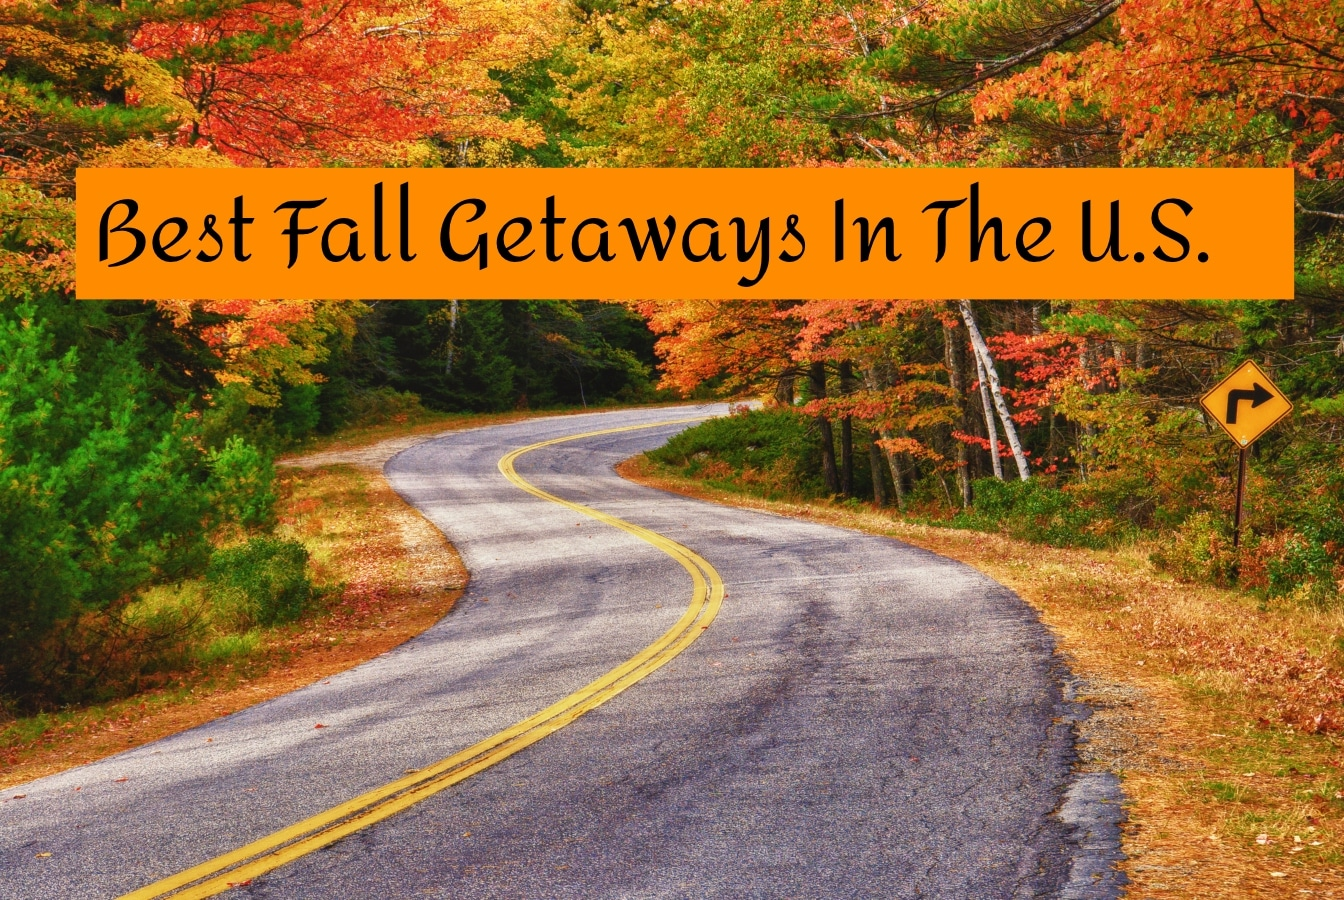 Best Fall Getaways in the us